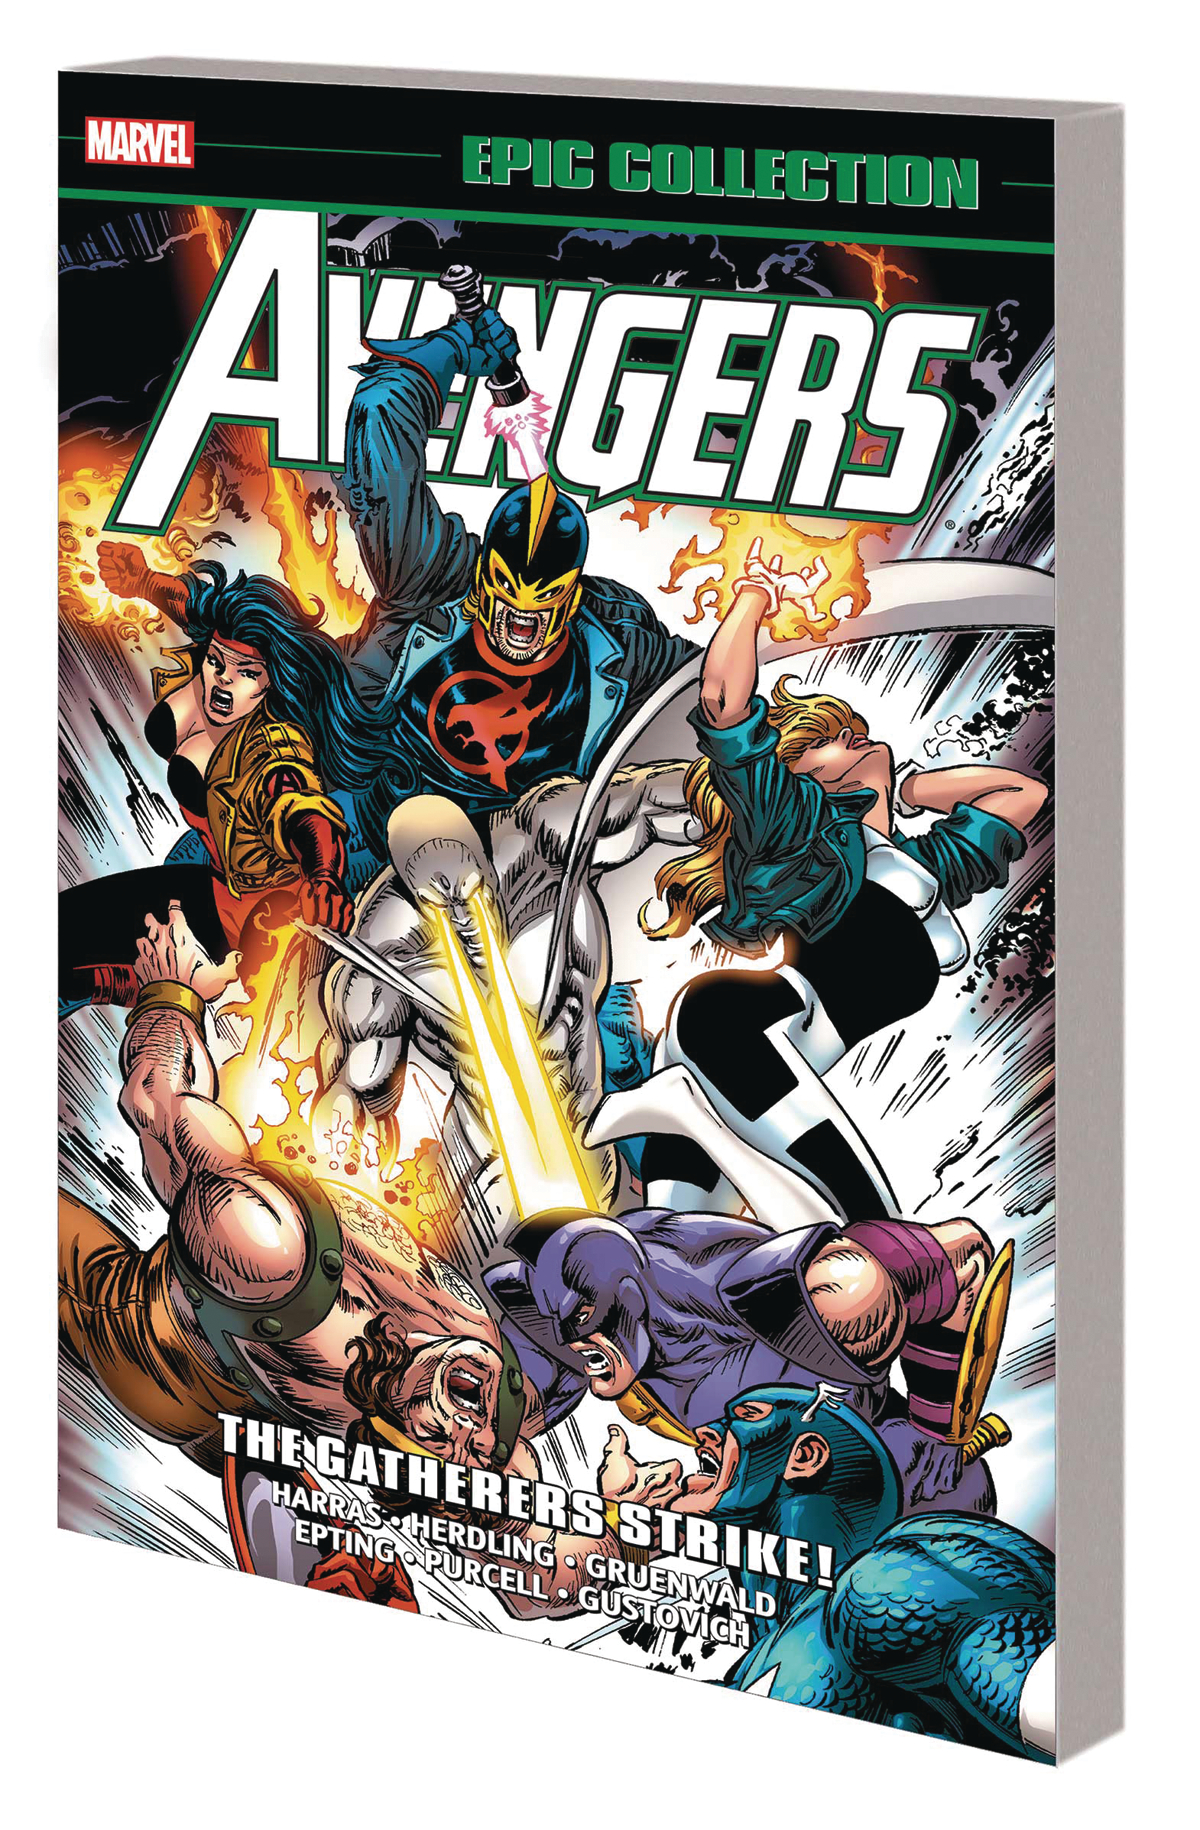 AVENGERS EPIC COLLECTION (24) TP GATHERERS STRIKE [#360-366+]